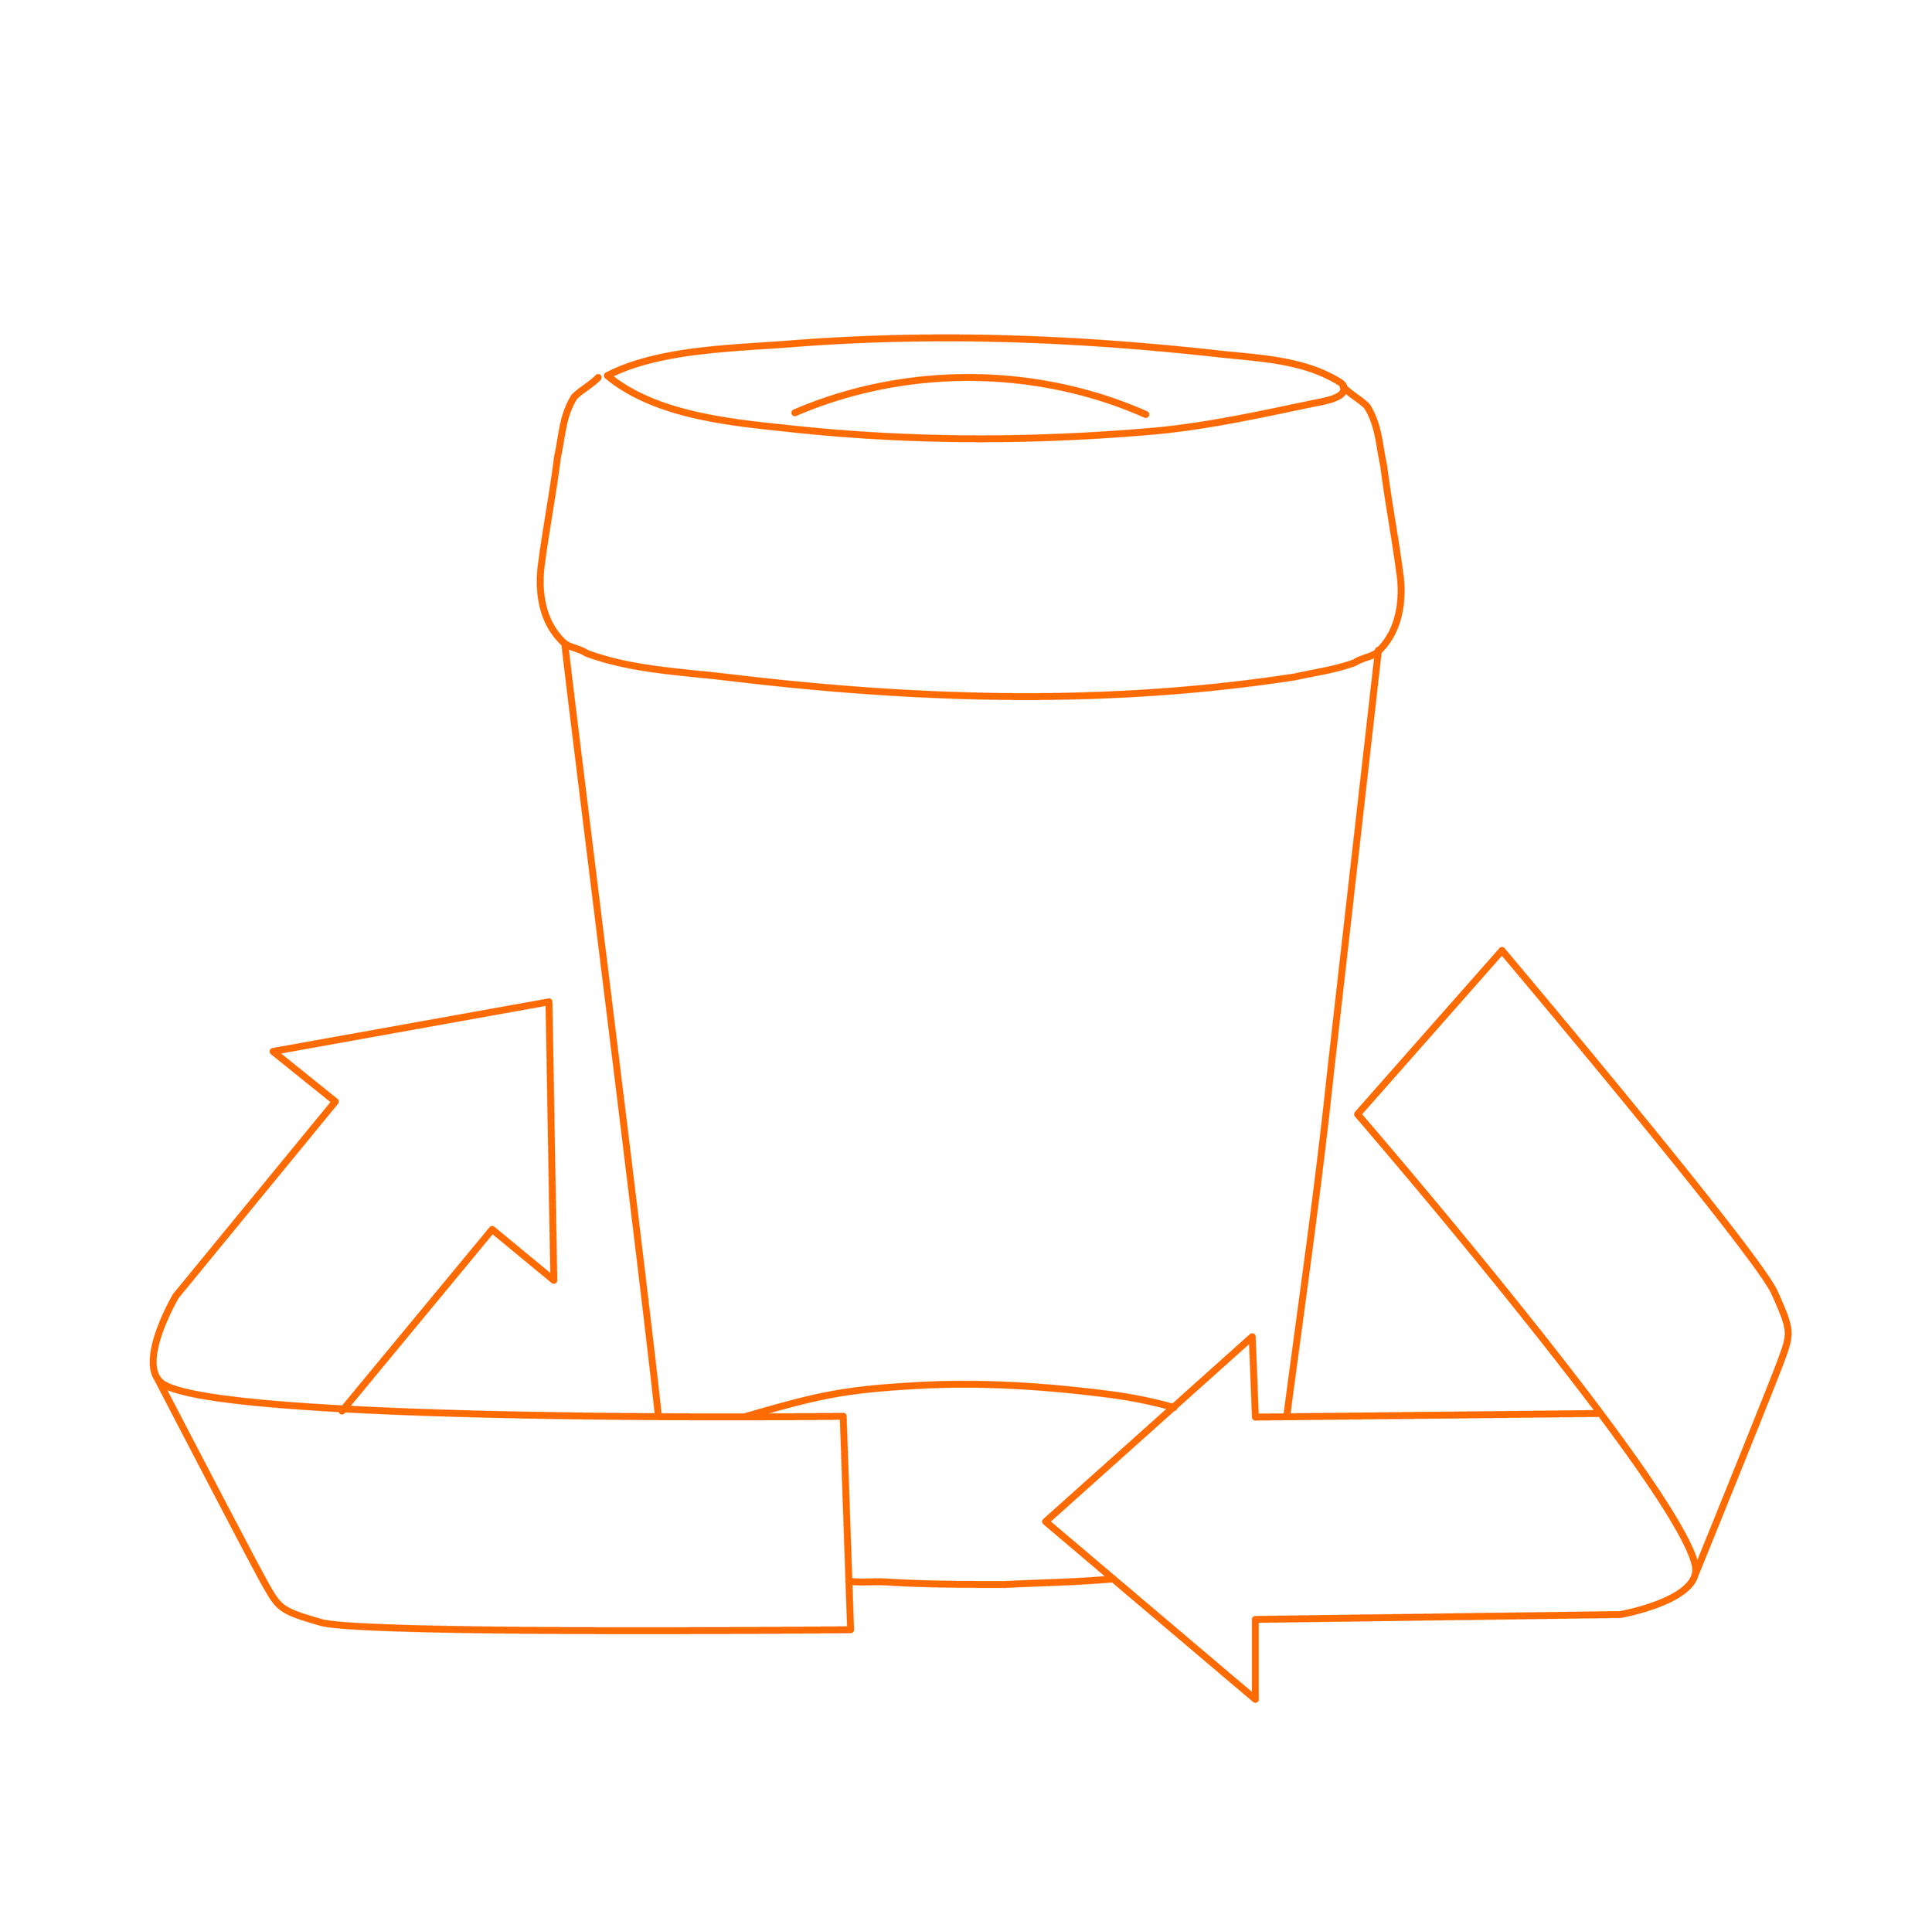 3. Make recycling easier for customers - The £1 million fund will make it easier for customers to recycle current disposable cups by boosting cup recycling infrastructure and communications in at least ten busy locations across the UK.